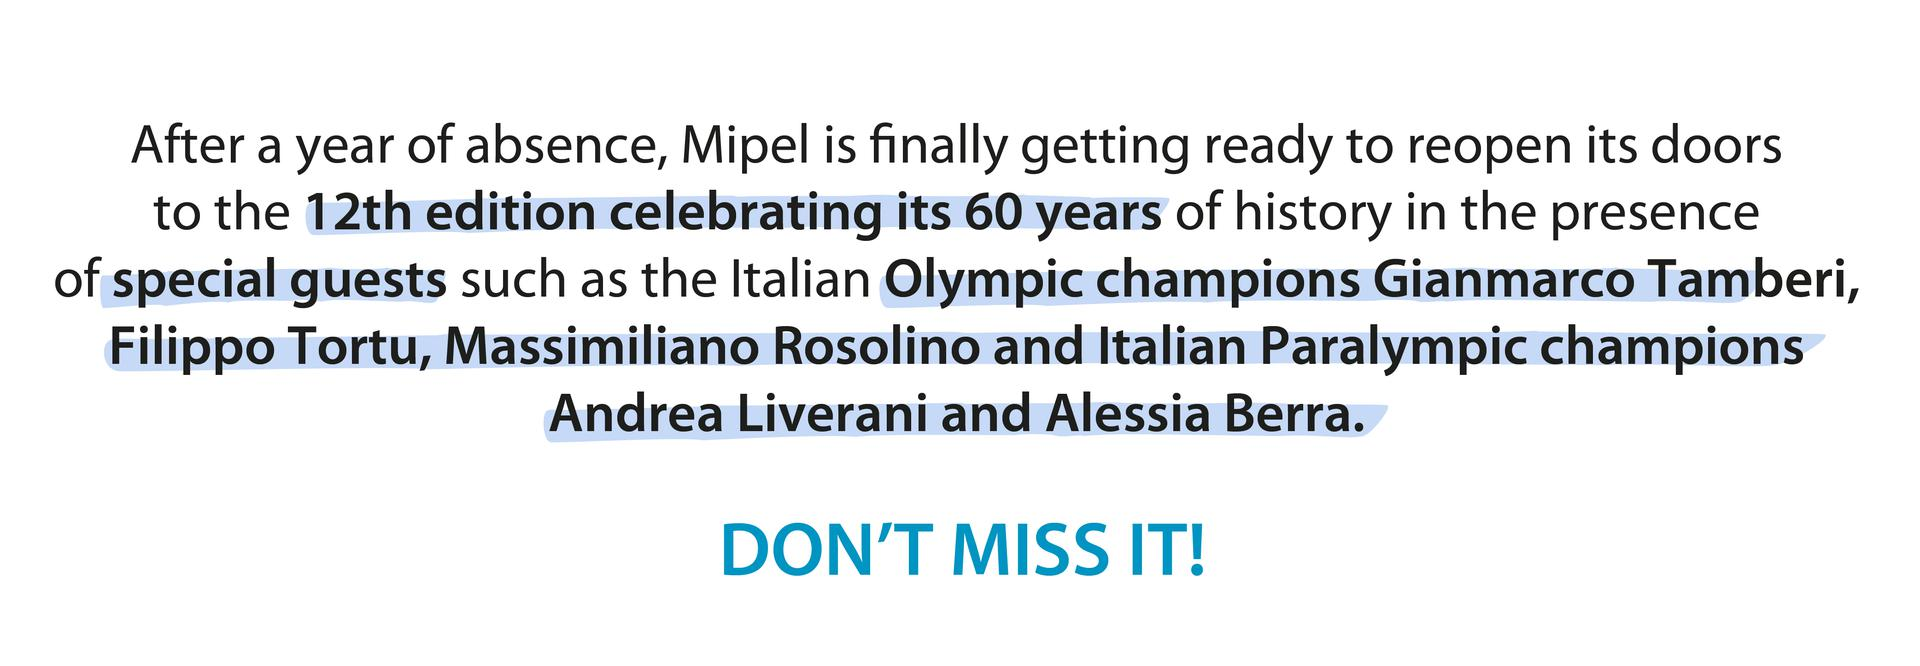 Mipel celebrates its 120th edition in the presence of special guests such as the Italian Olympic and Paralympic champions (Tamberi, Tortu, Rosolino, Liverani and Serra)